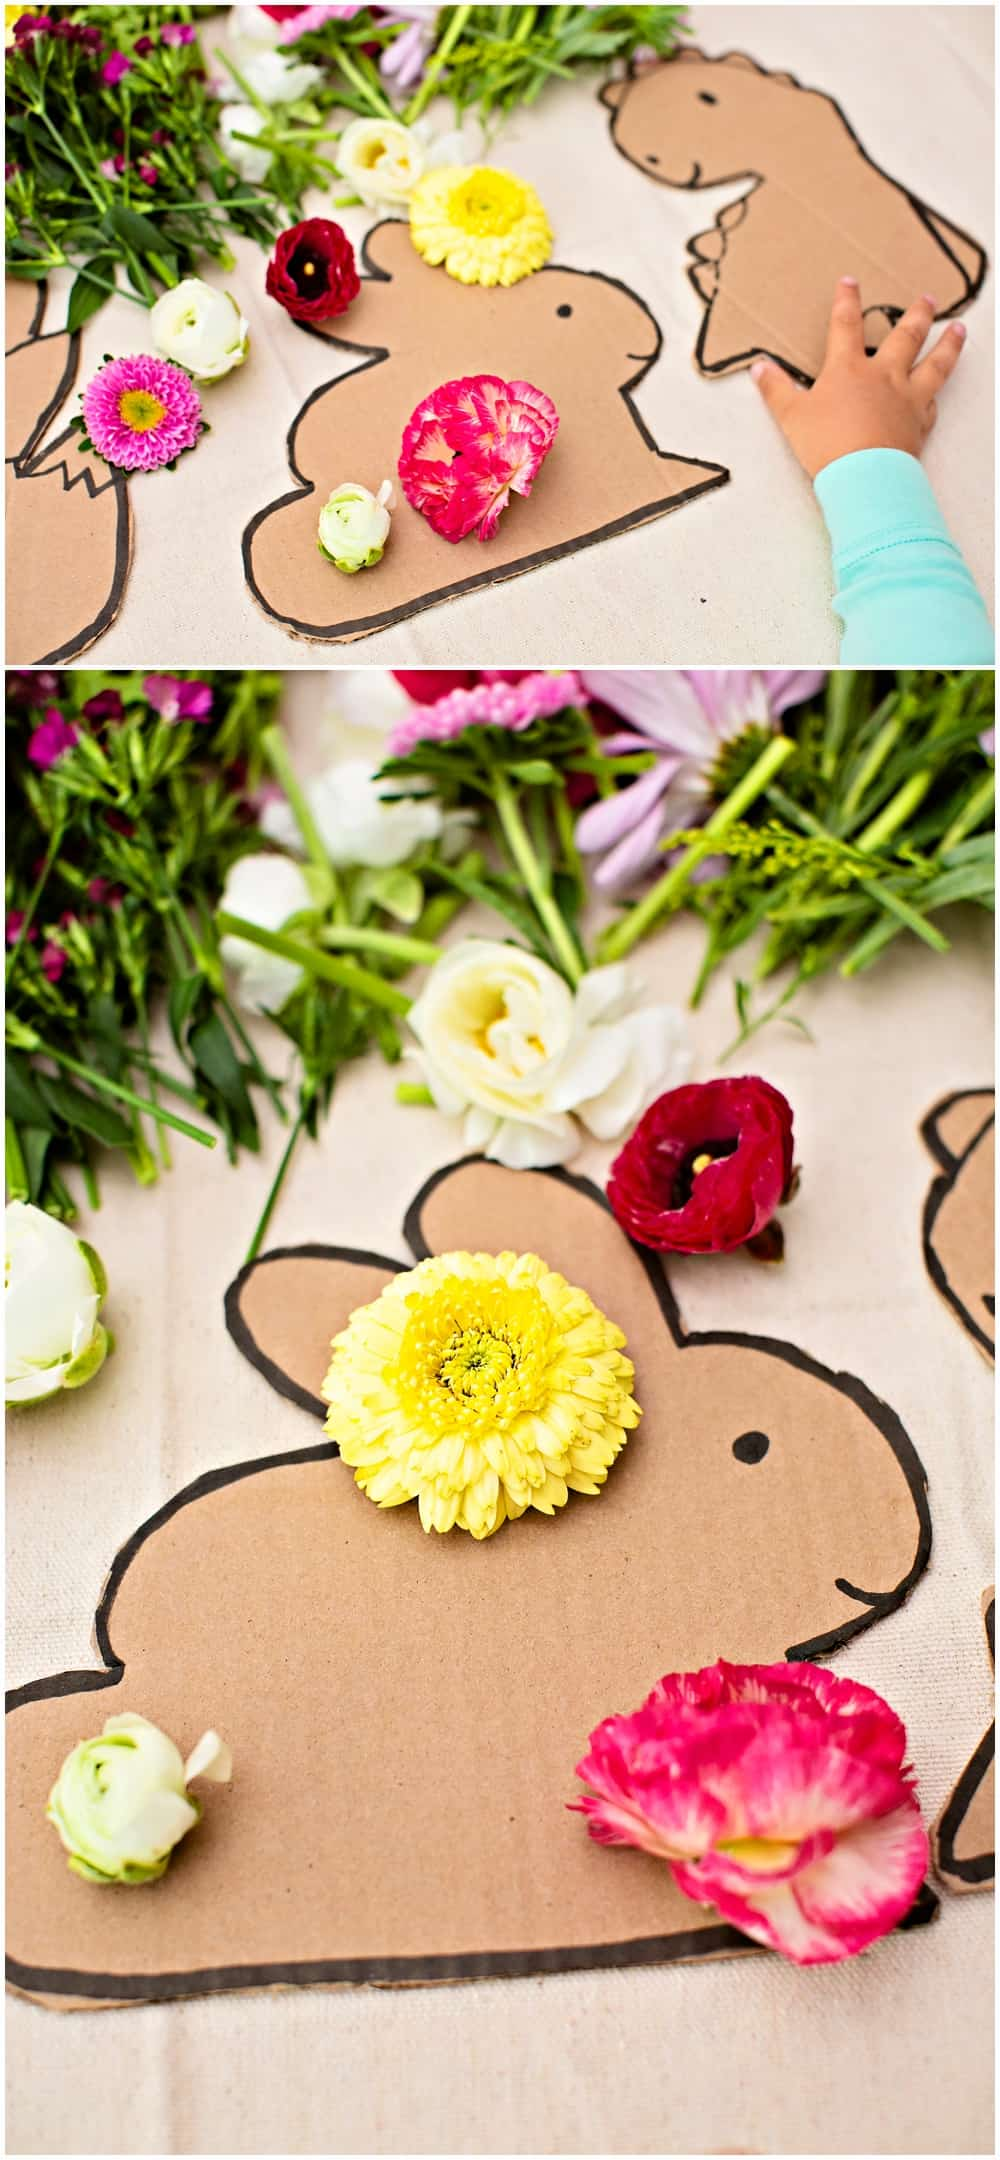 outdoor nature craft activity with flowers for kids